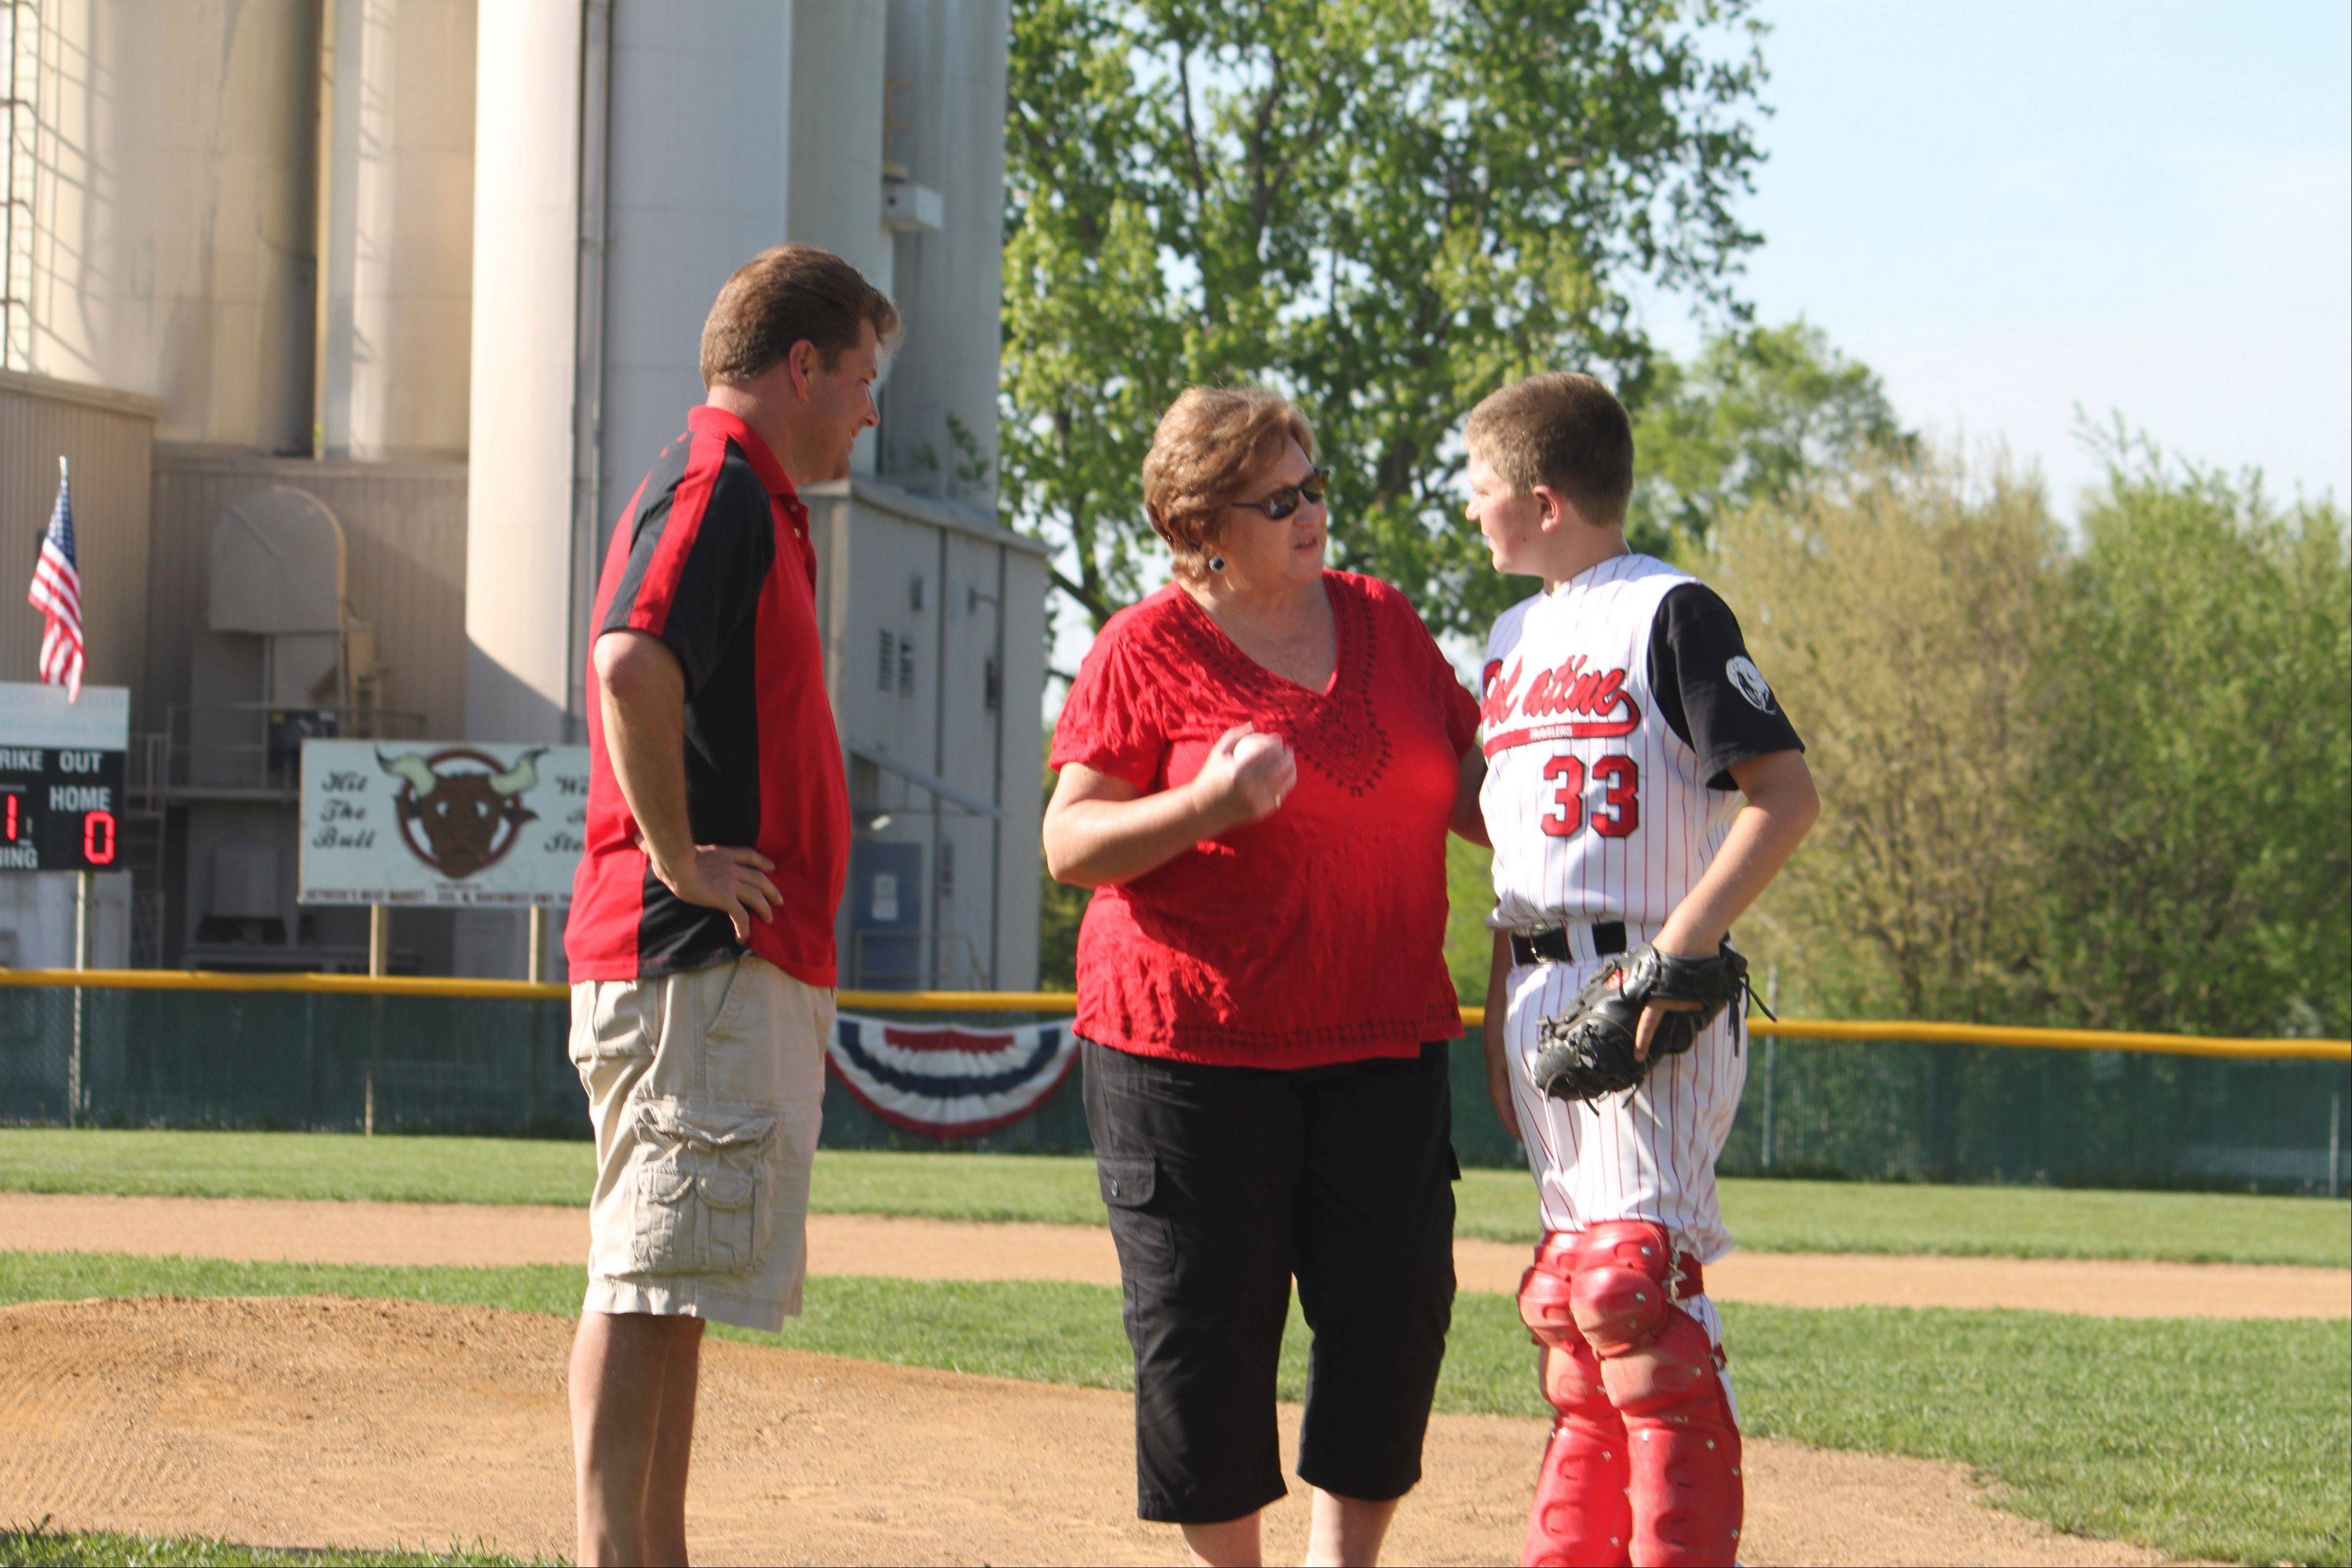 Debbie Pohl talks with catcher Will Josten and tournament director Chris Bechtold after throwing out the first pitch Thursday at the Casey Pohl Memorial Tournament.